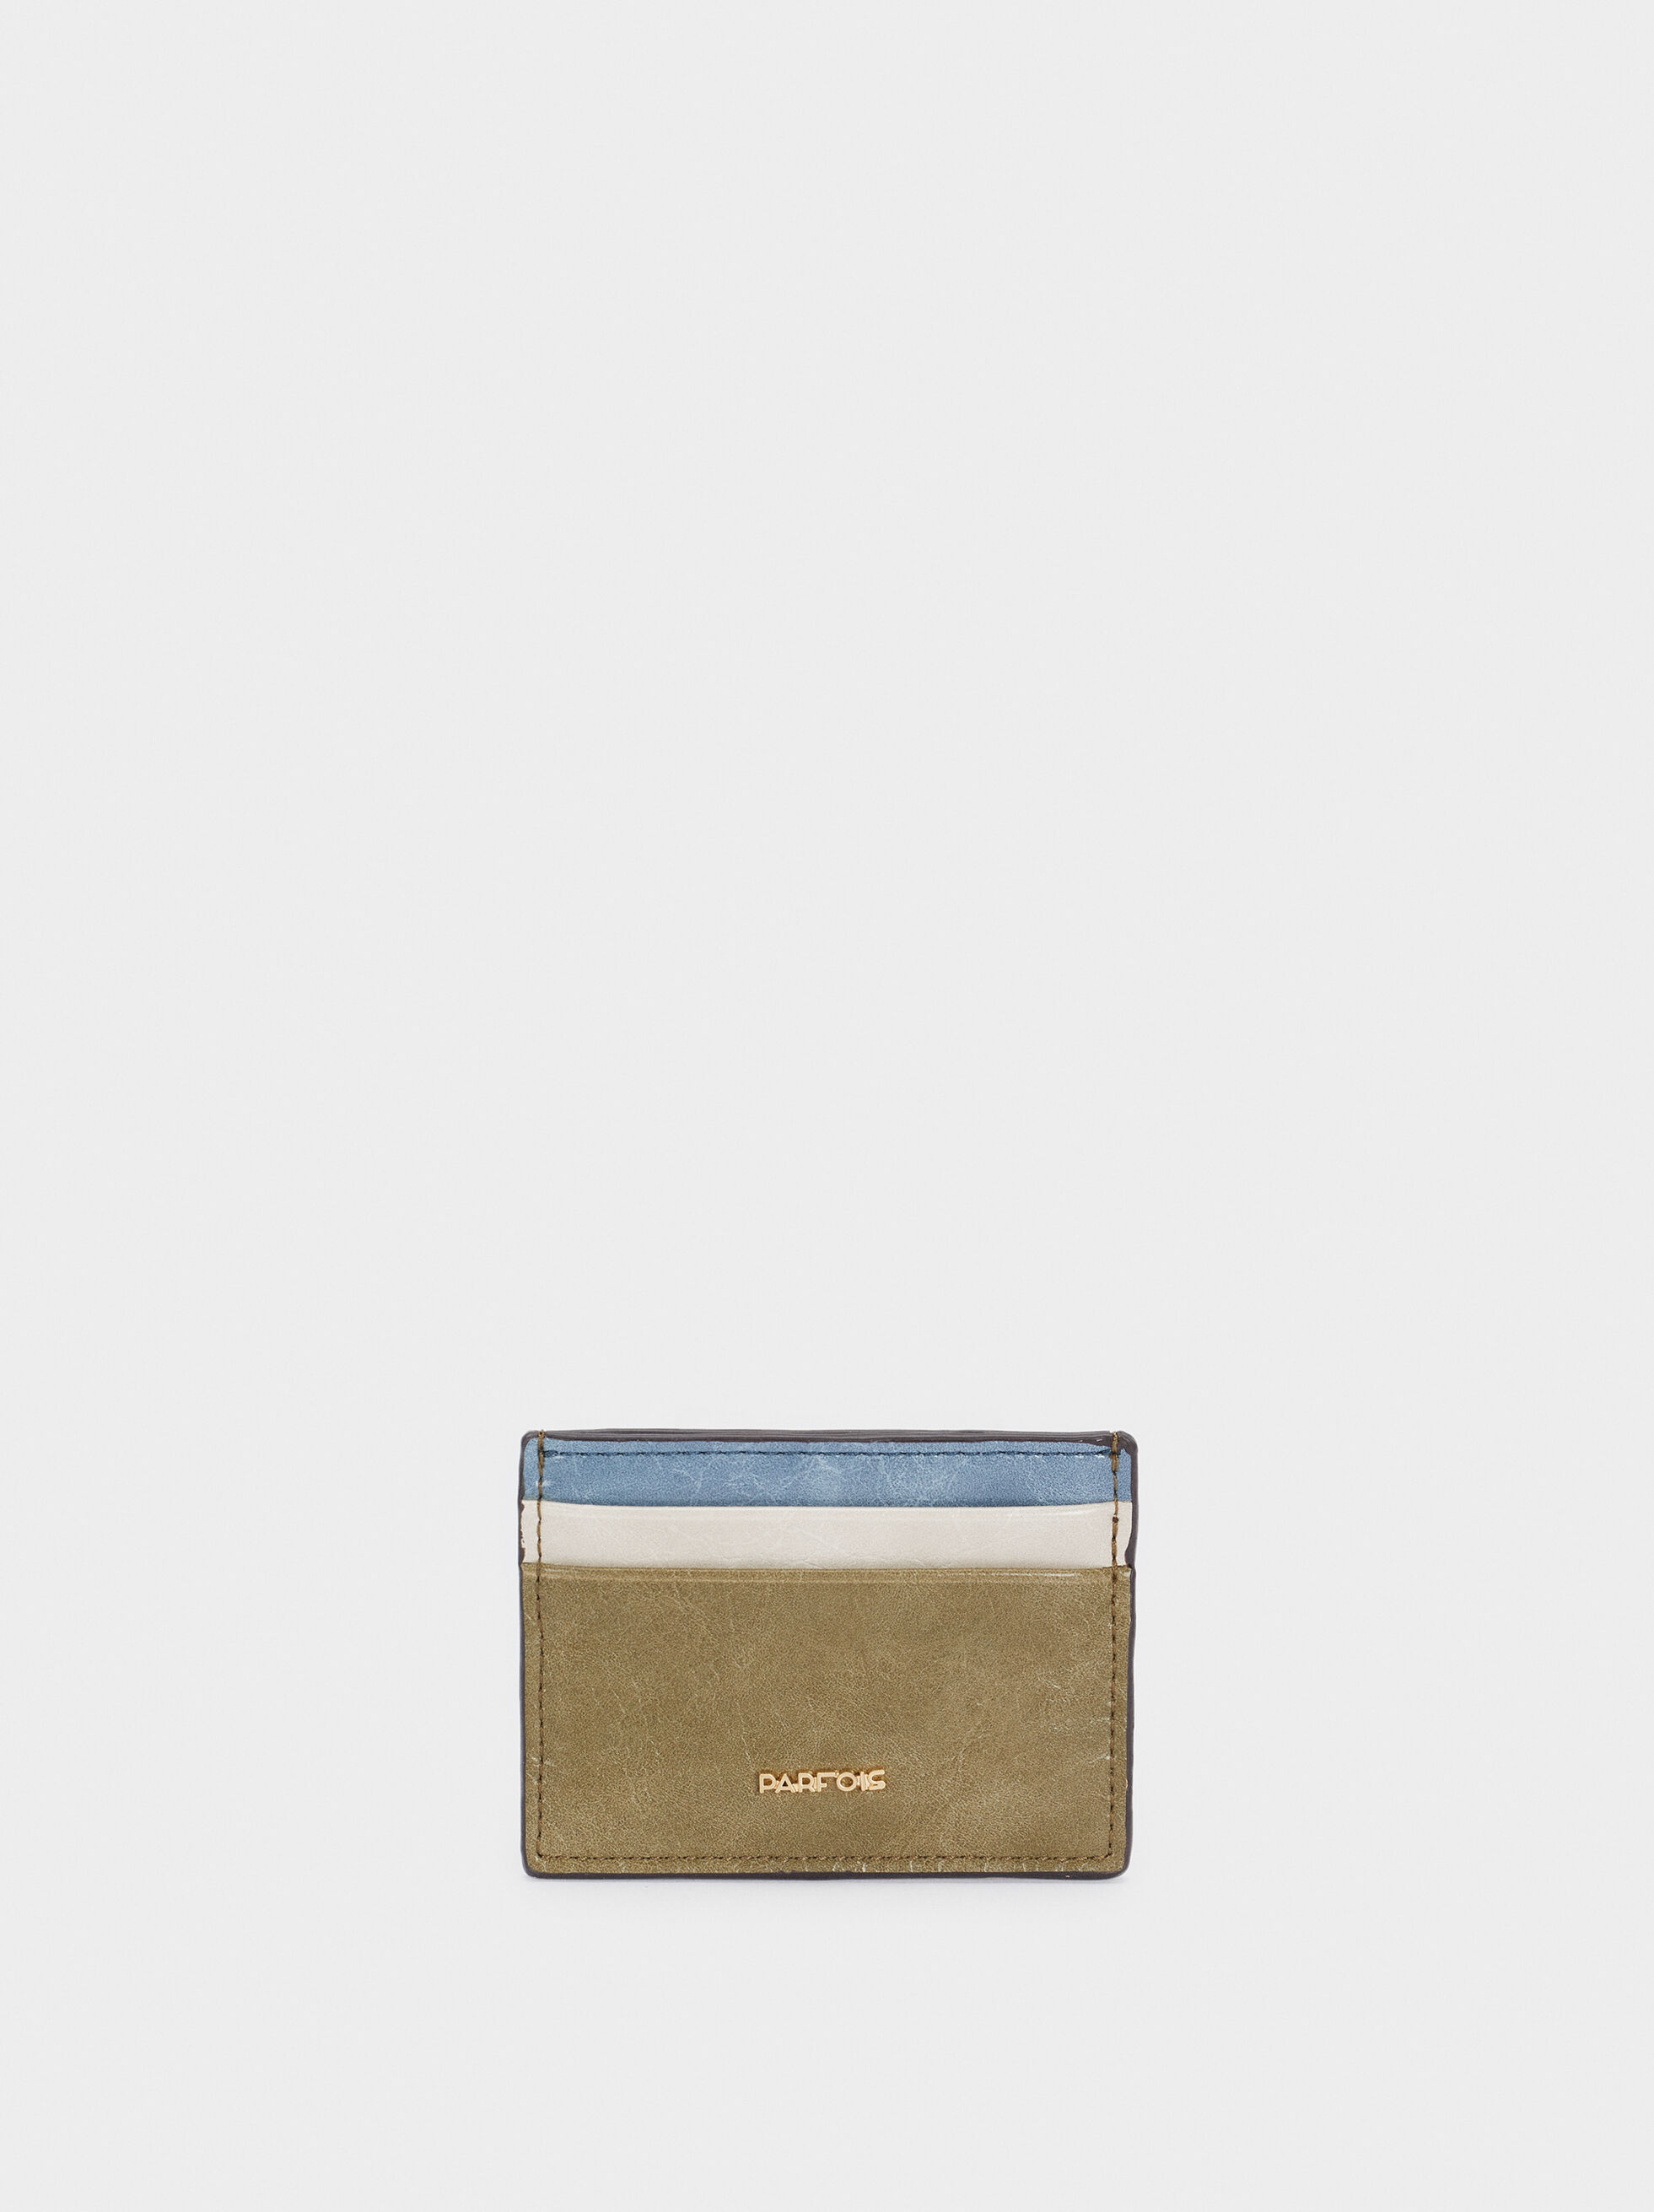 Multi-Colour Card Holder, Khaki, hi-res